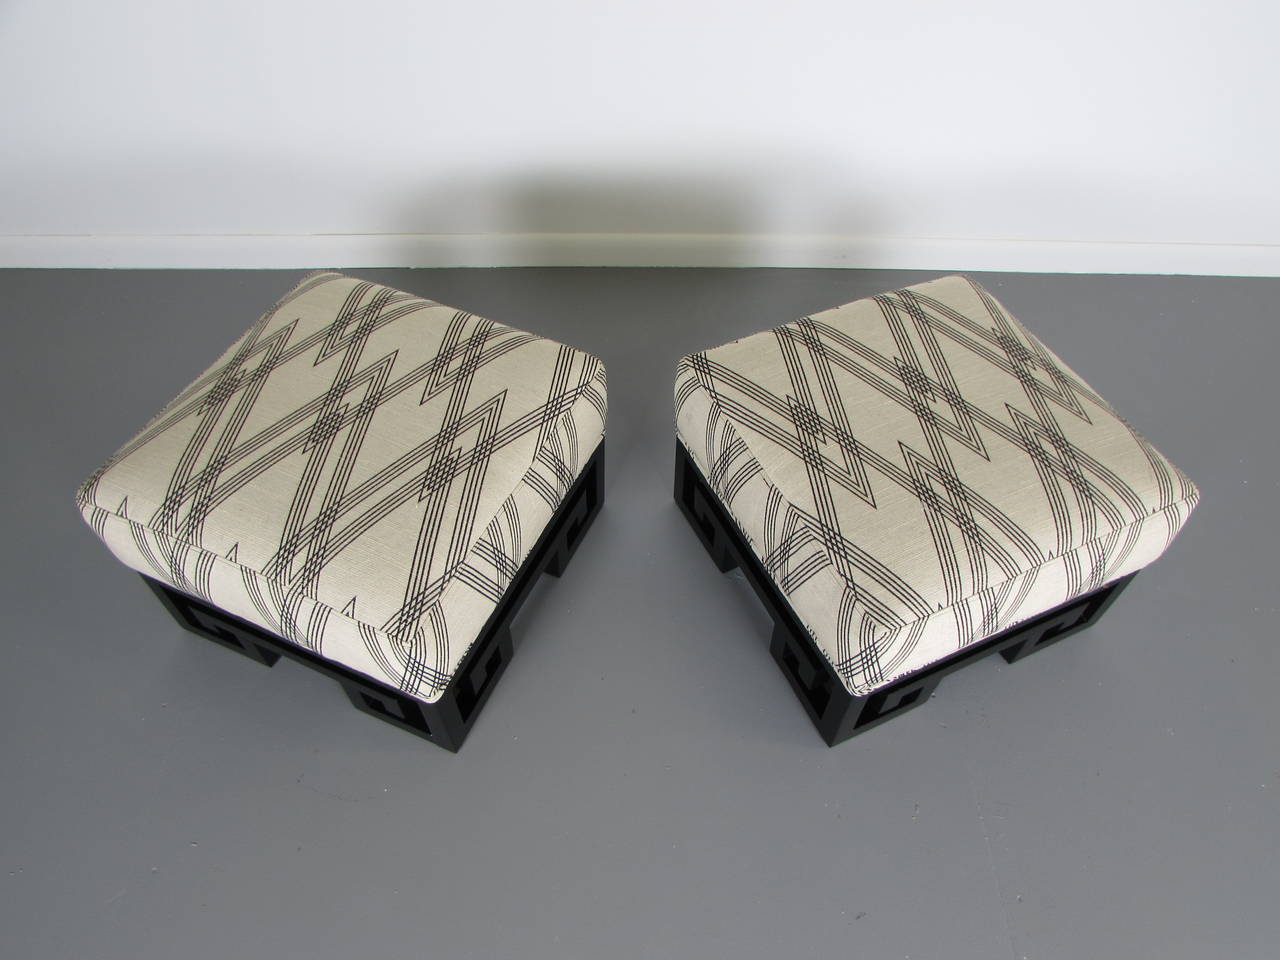 Incredible Ottomans Or Stools With Lacquered Greek Key